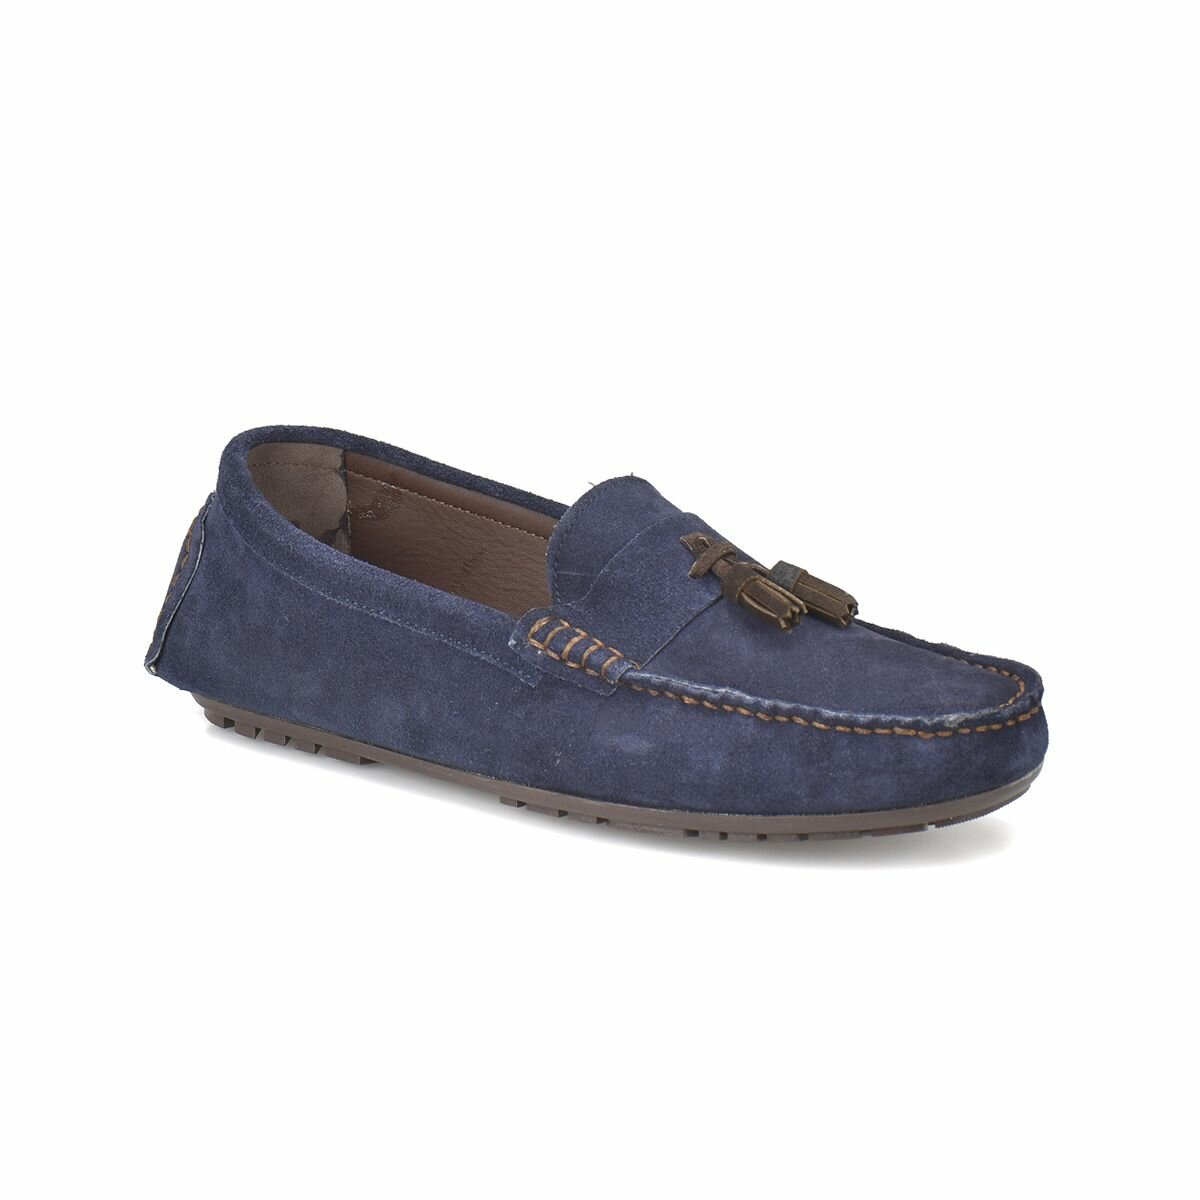 FLO 310 Navy Blue Men 'S Shoes Oxide